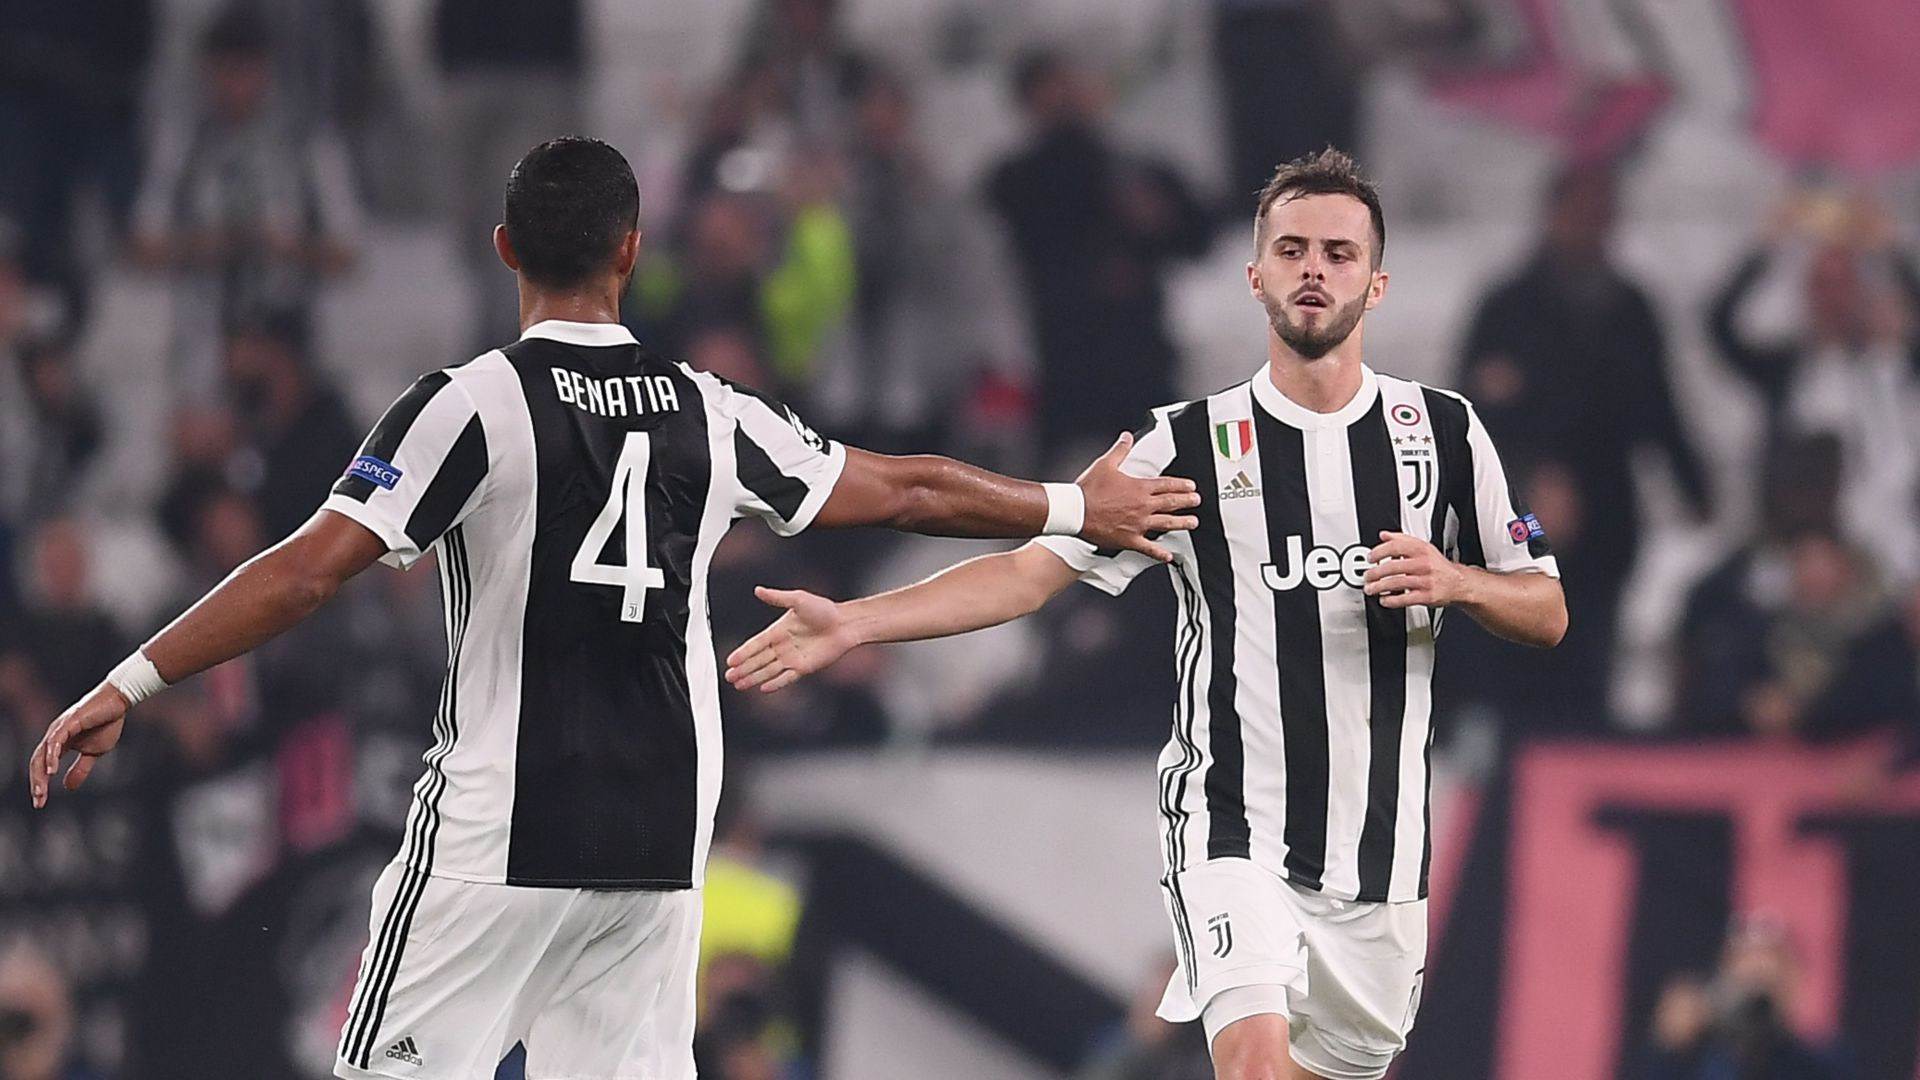 Football News, Live Scores, Results & Transfers | Goal.comEx-Juve-Profi Medhi Benatia verrät: Pjanic hatte Angebote von Real Madrid und PSG